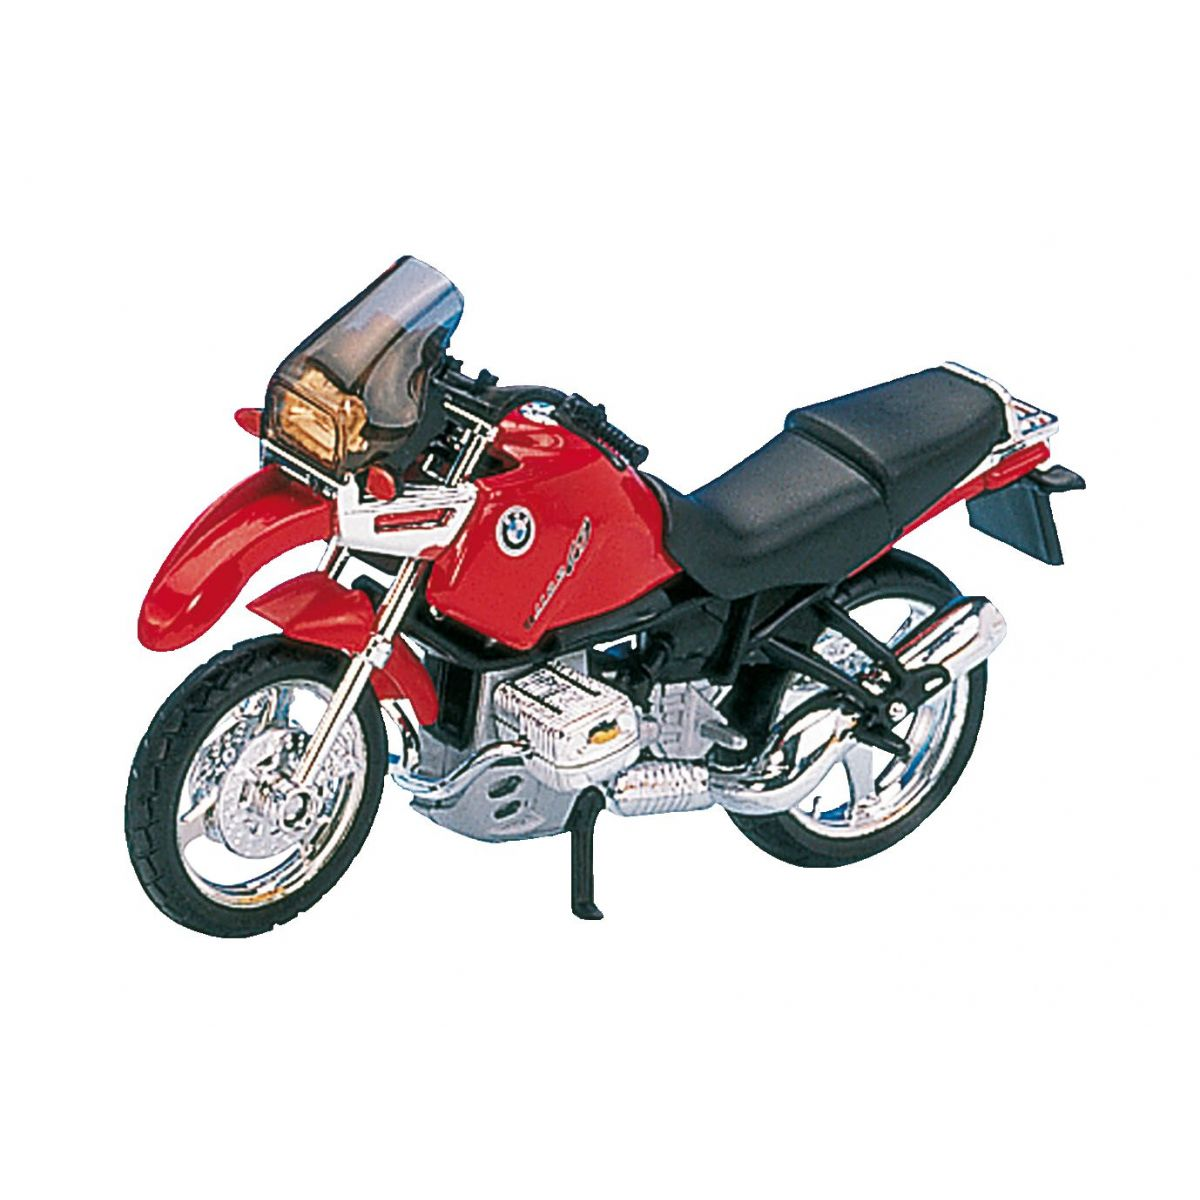 Dromader Welly Motorka 11cm BMW R1100 GS